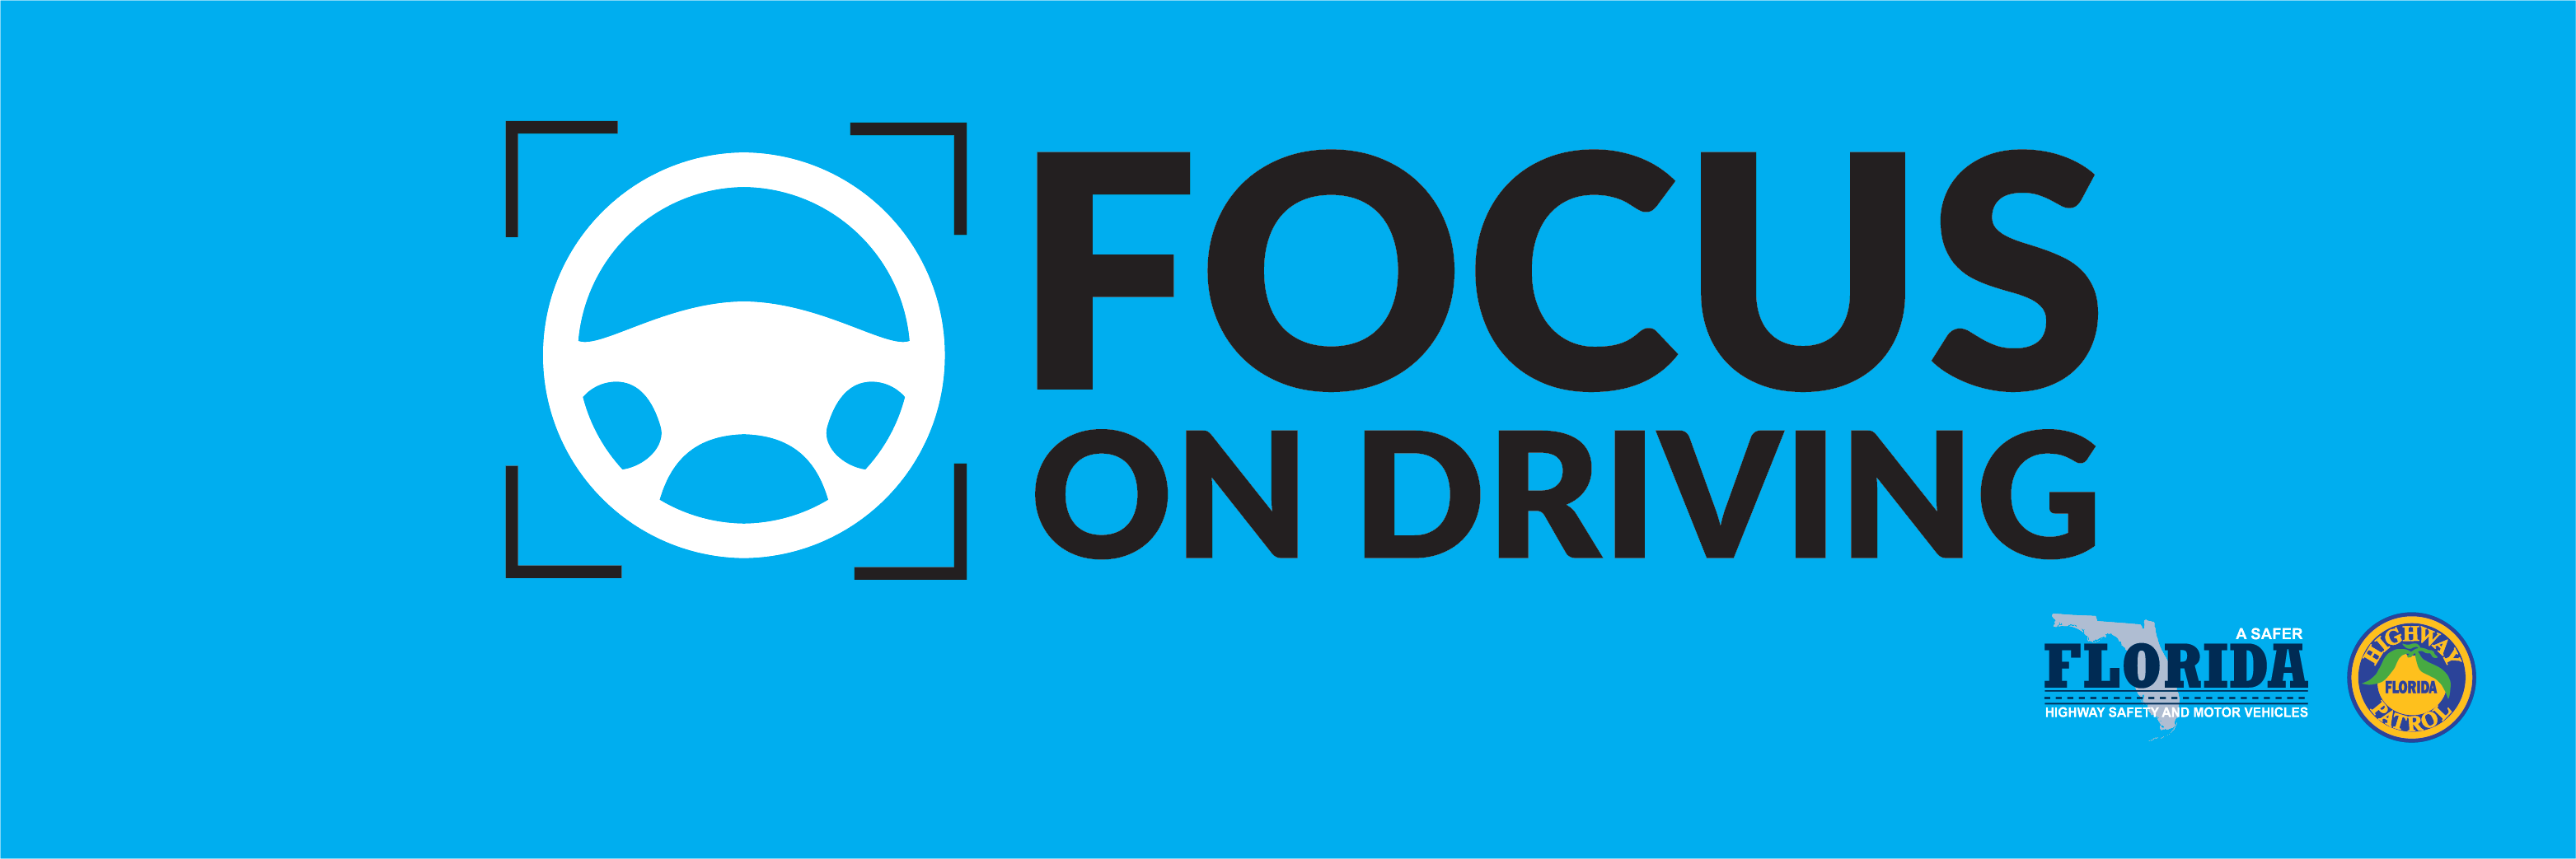 2018 Focus On Driving Twitter Cover ...